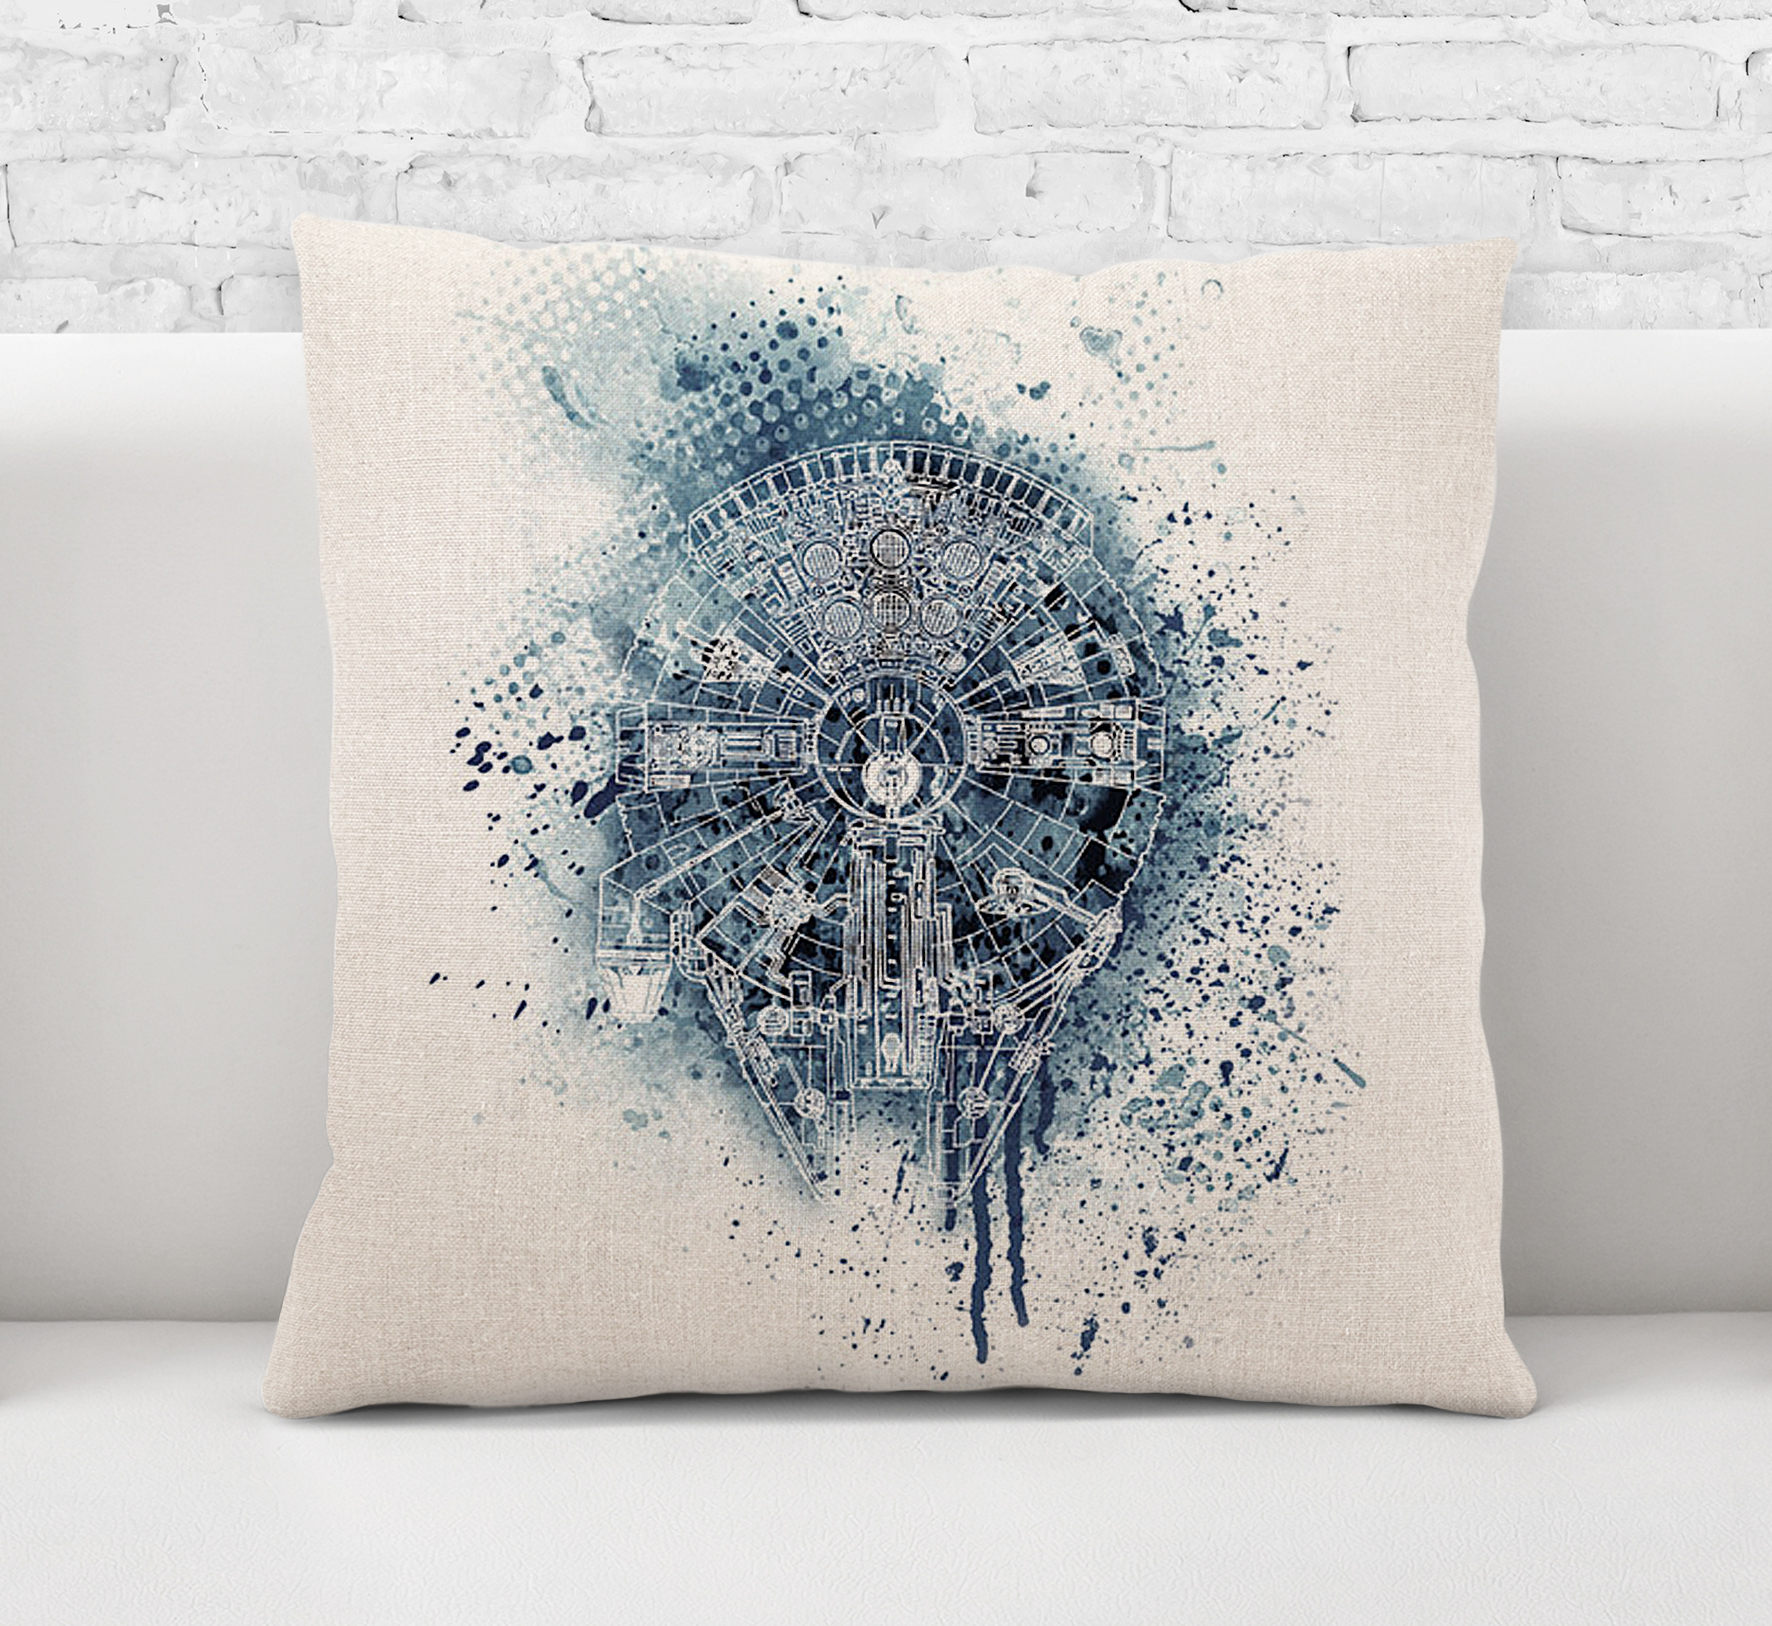 Throw Pillow CaseCushion CoverMillennium Falcon Star Wars Acrylic Painting Art0564